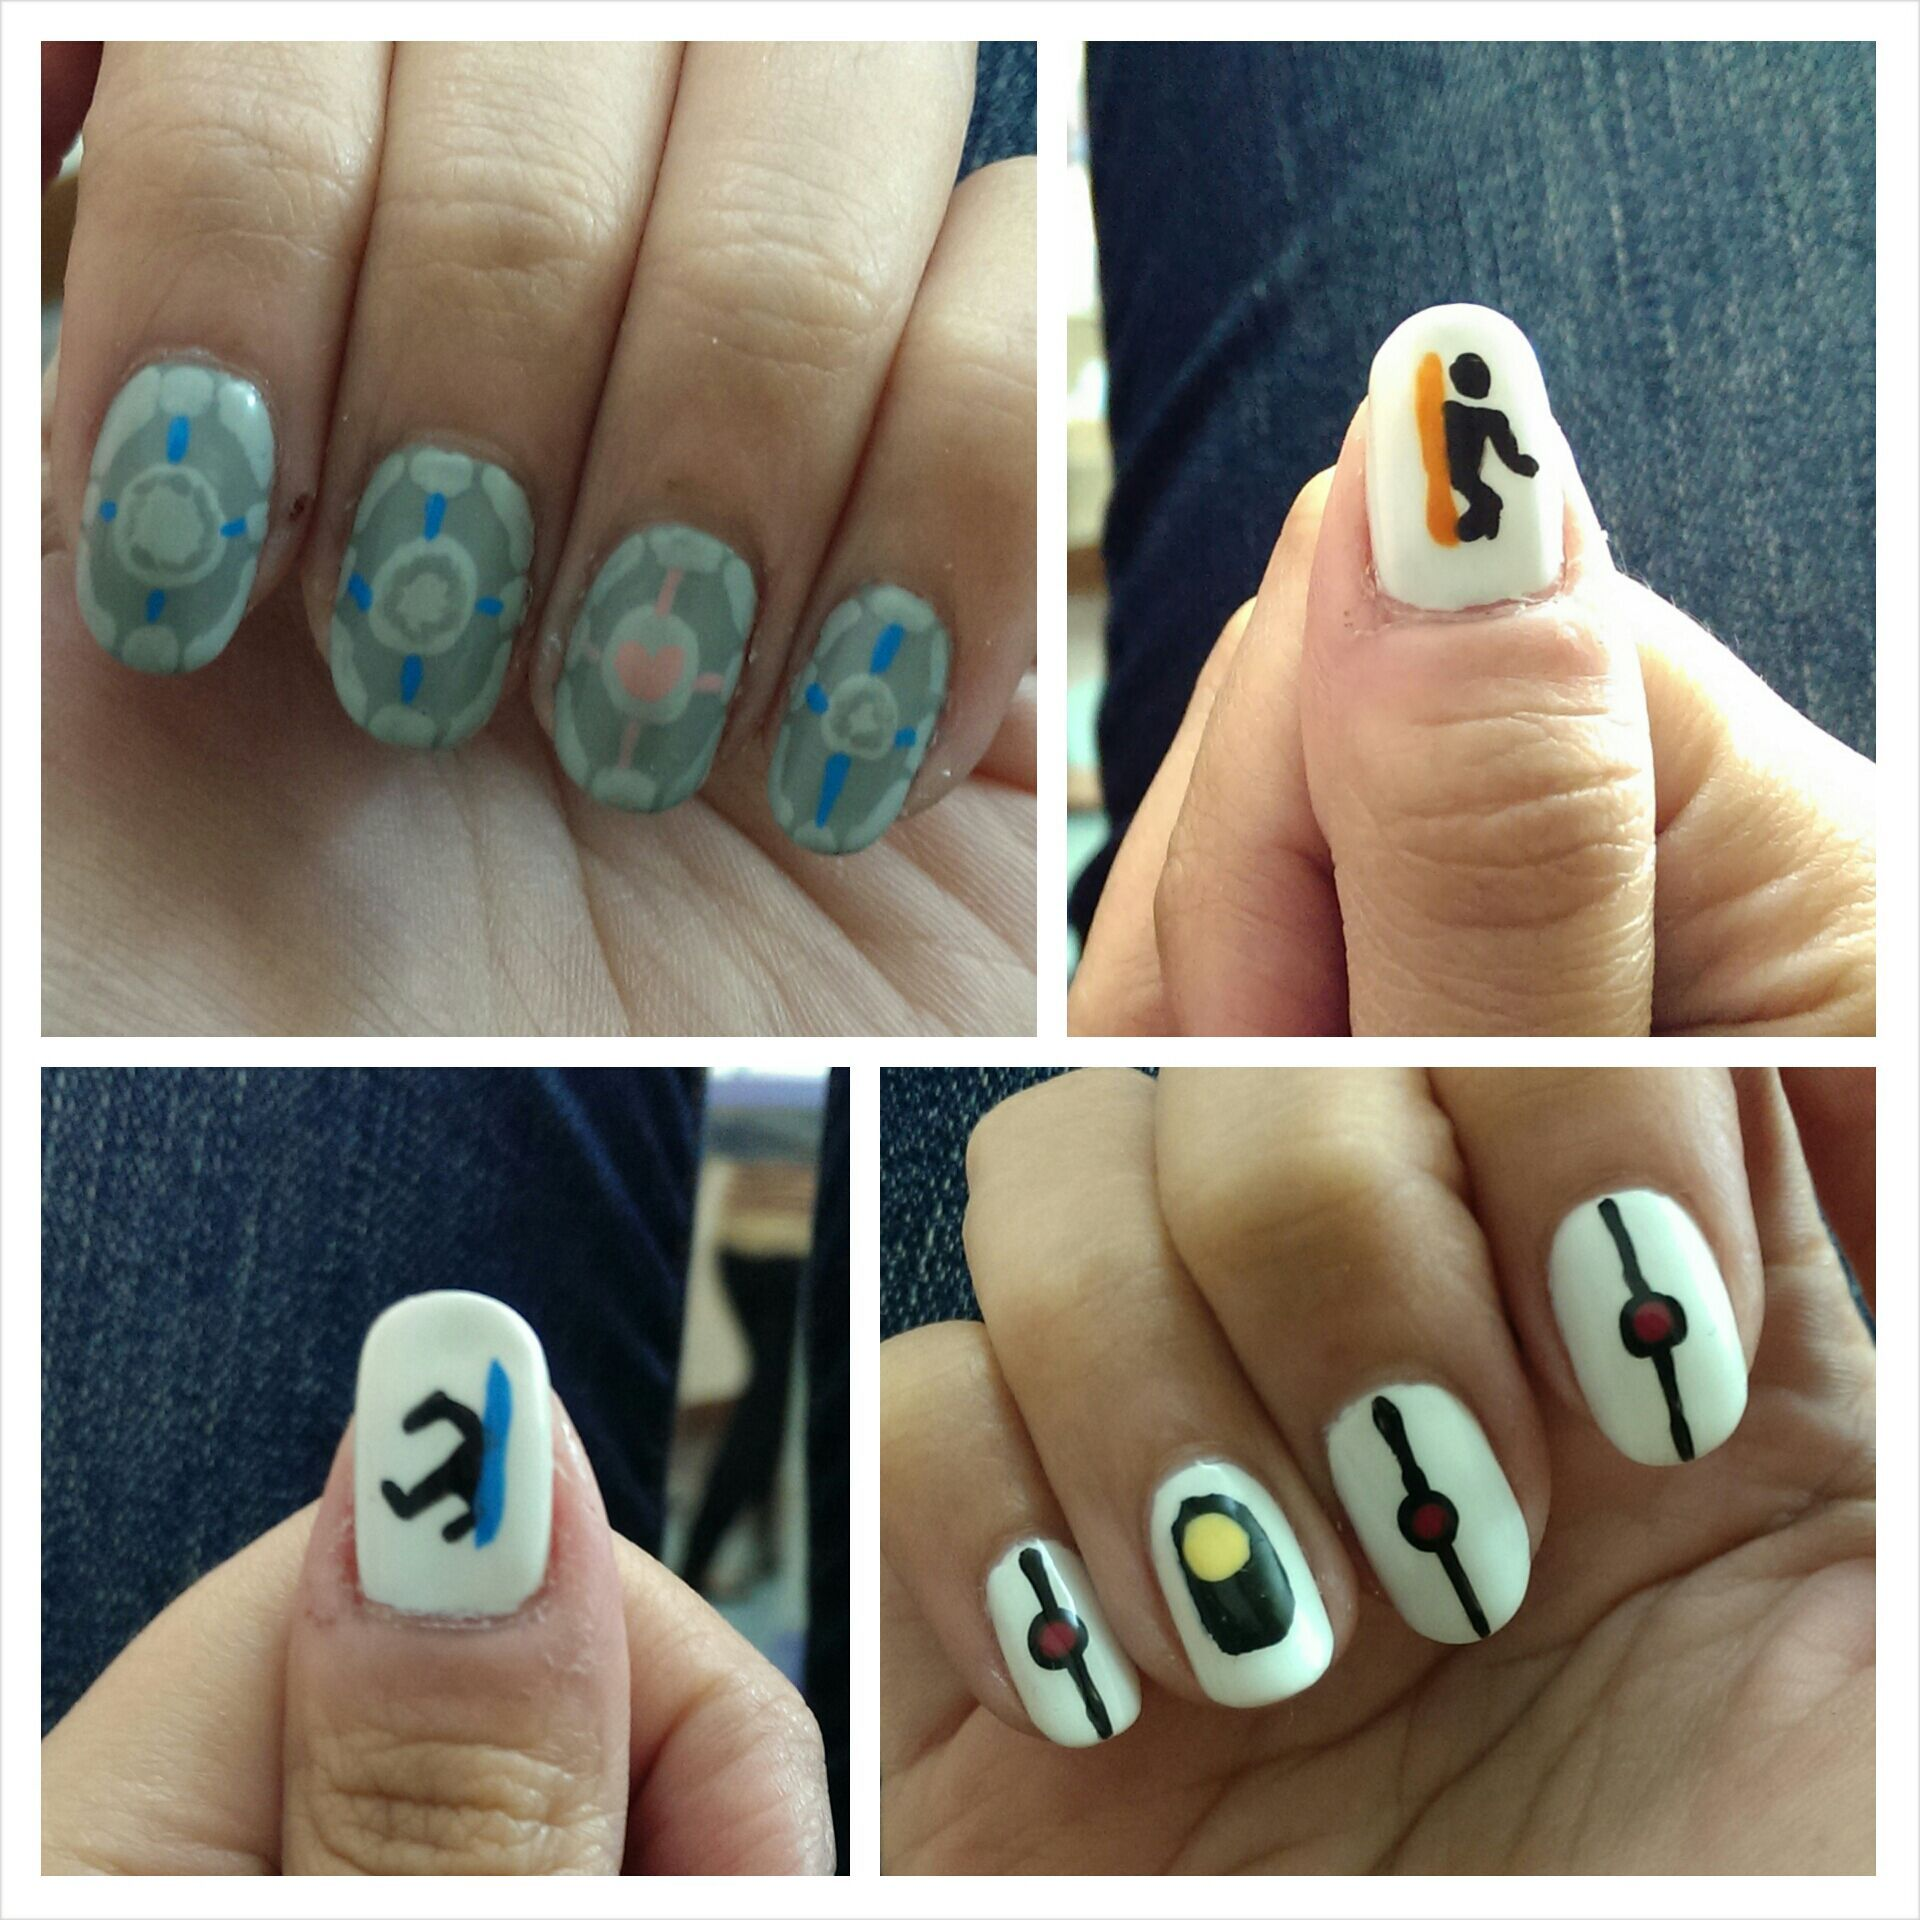 Reddit user kewpuss had the coolest nerdy nails today